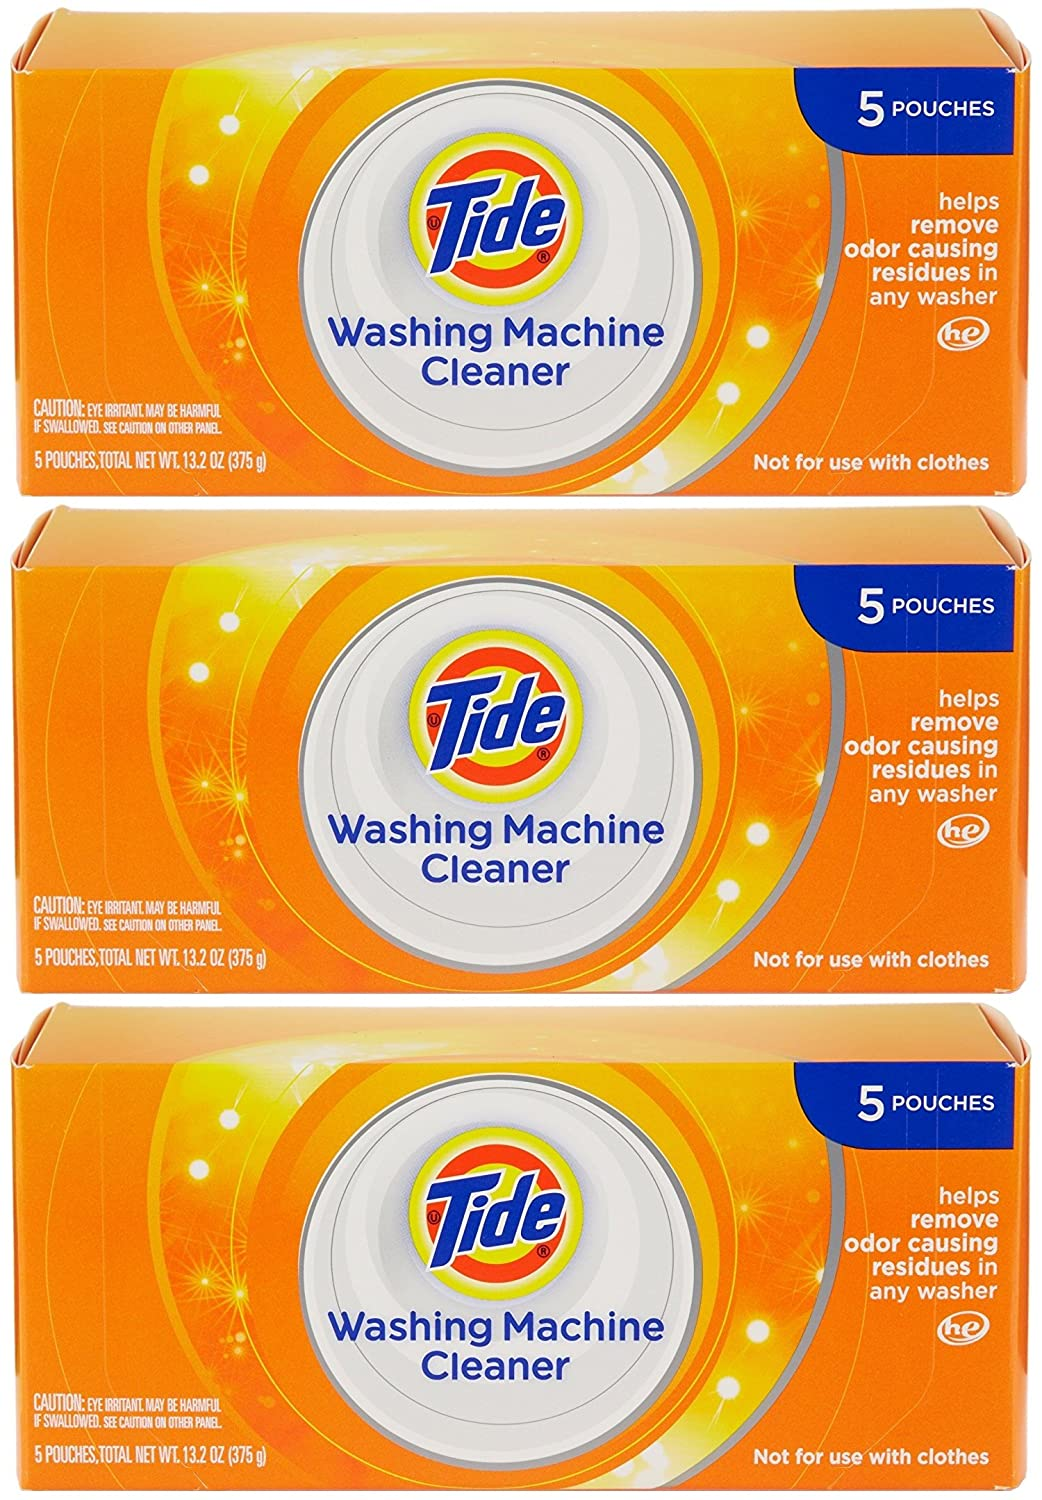 Amazon.com: Tide Washing Machine Cleaner 5ct He 3-Pack: Home & Kitchen